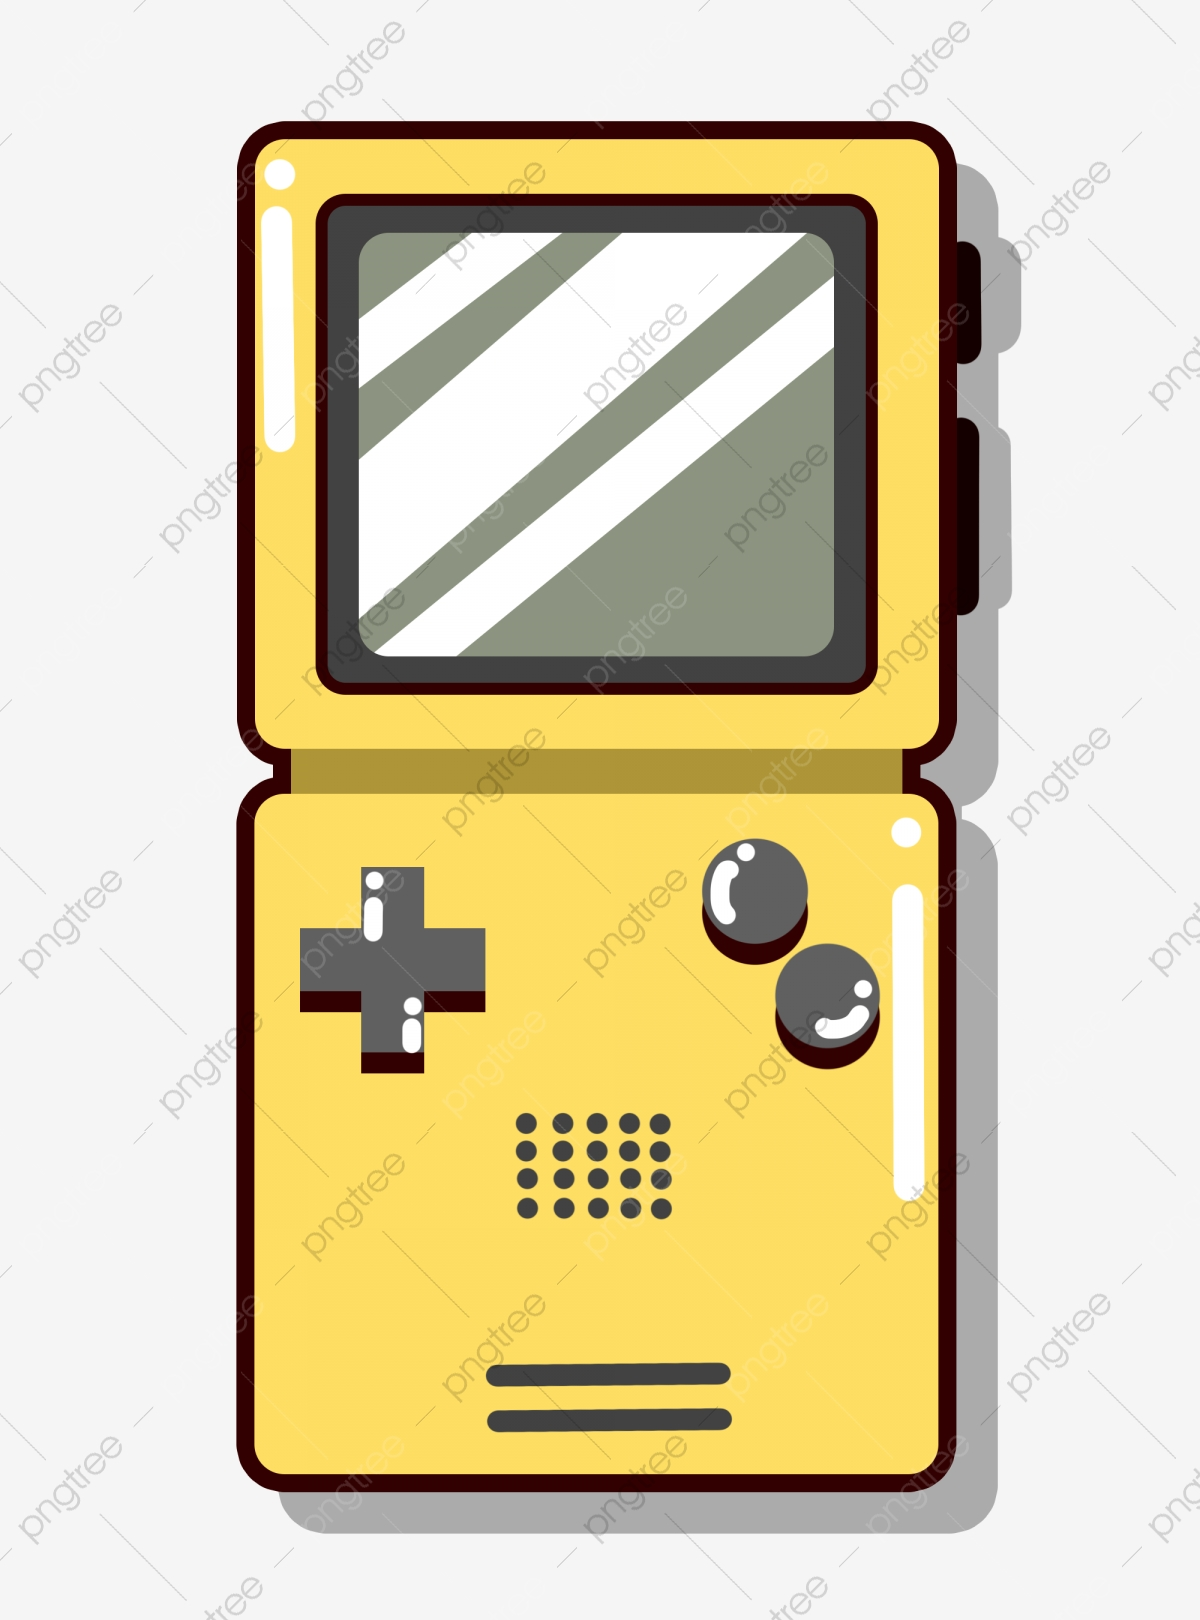 Tetris Game Console Yellow Square Game Console Png Transparent Clipart Image And Psd File For Free Download